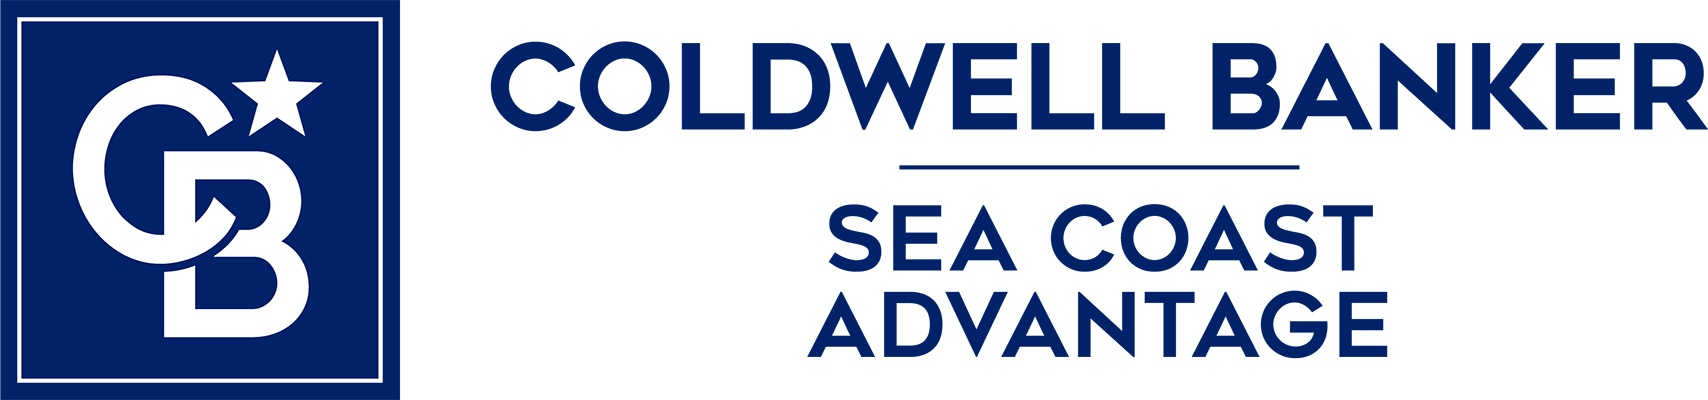 Millie Wright - Coldwell Banker Sea Coast Advantage Realty